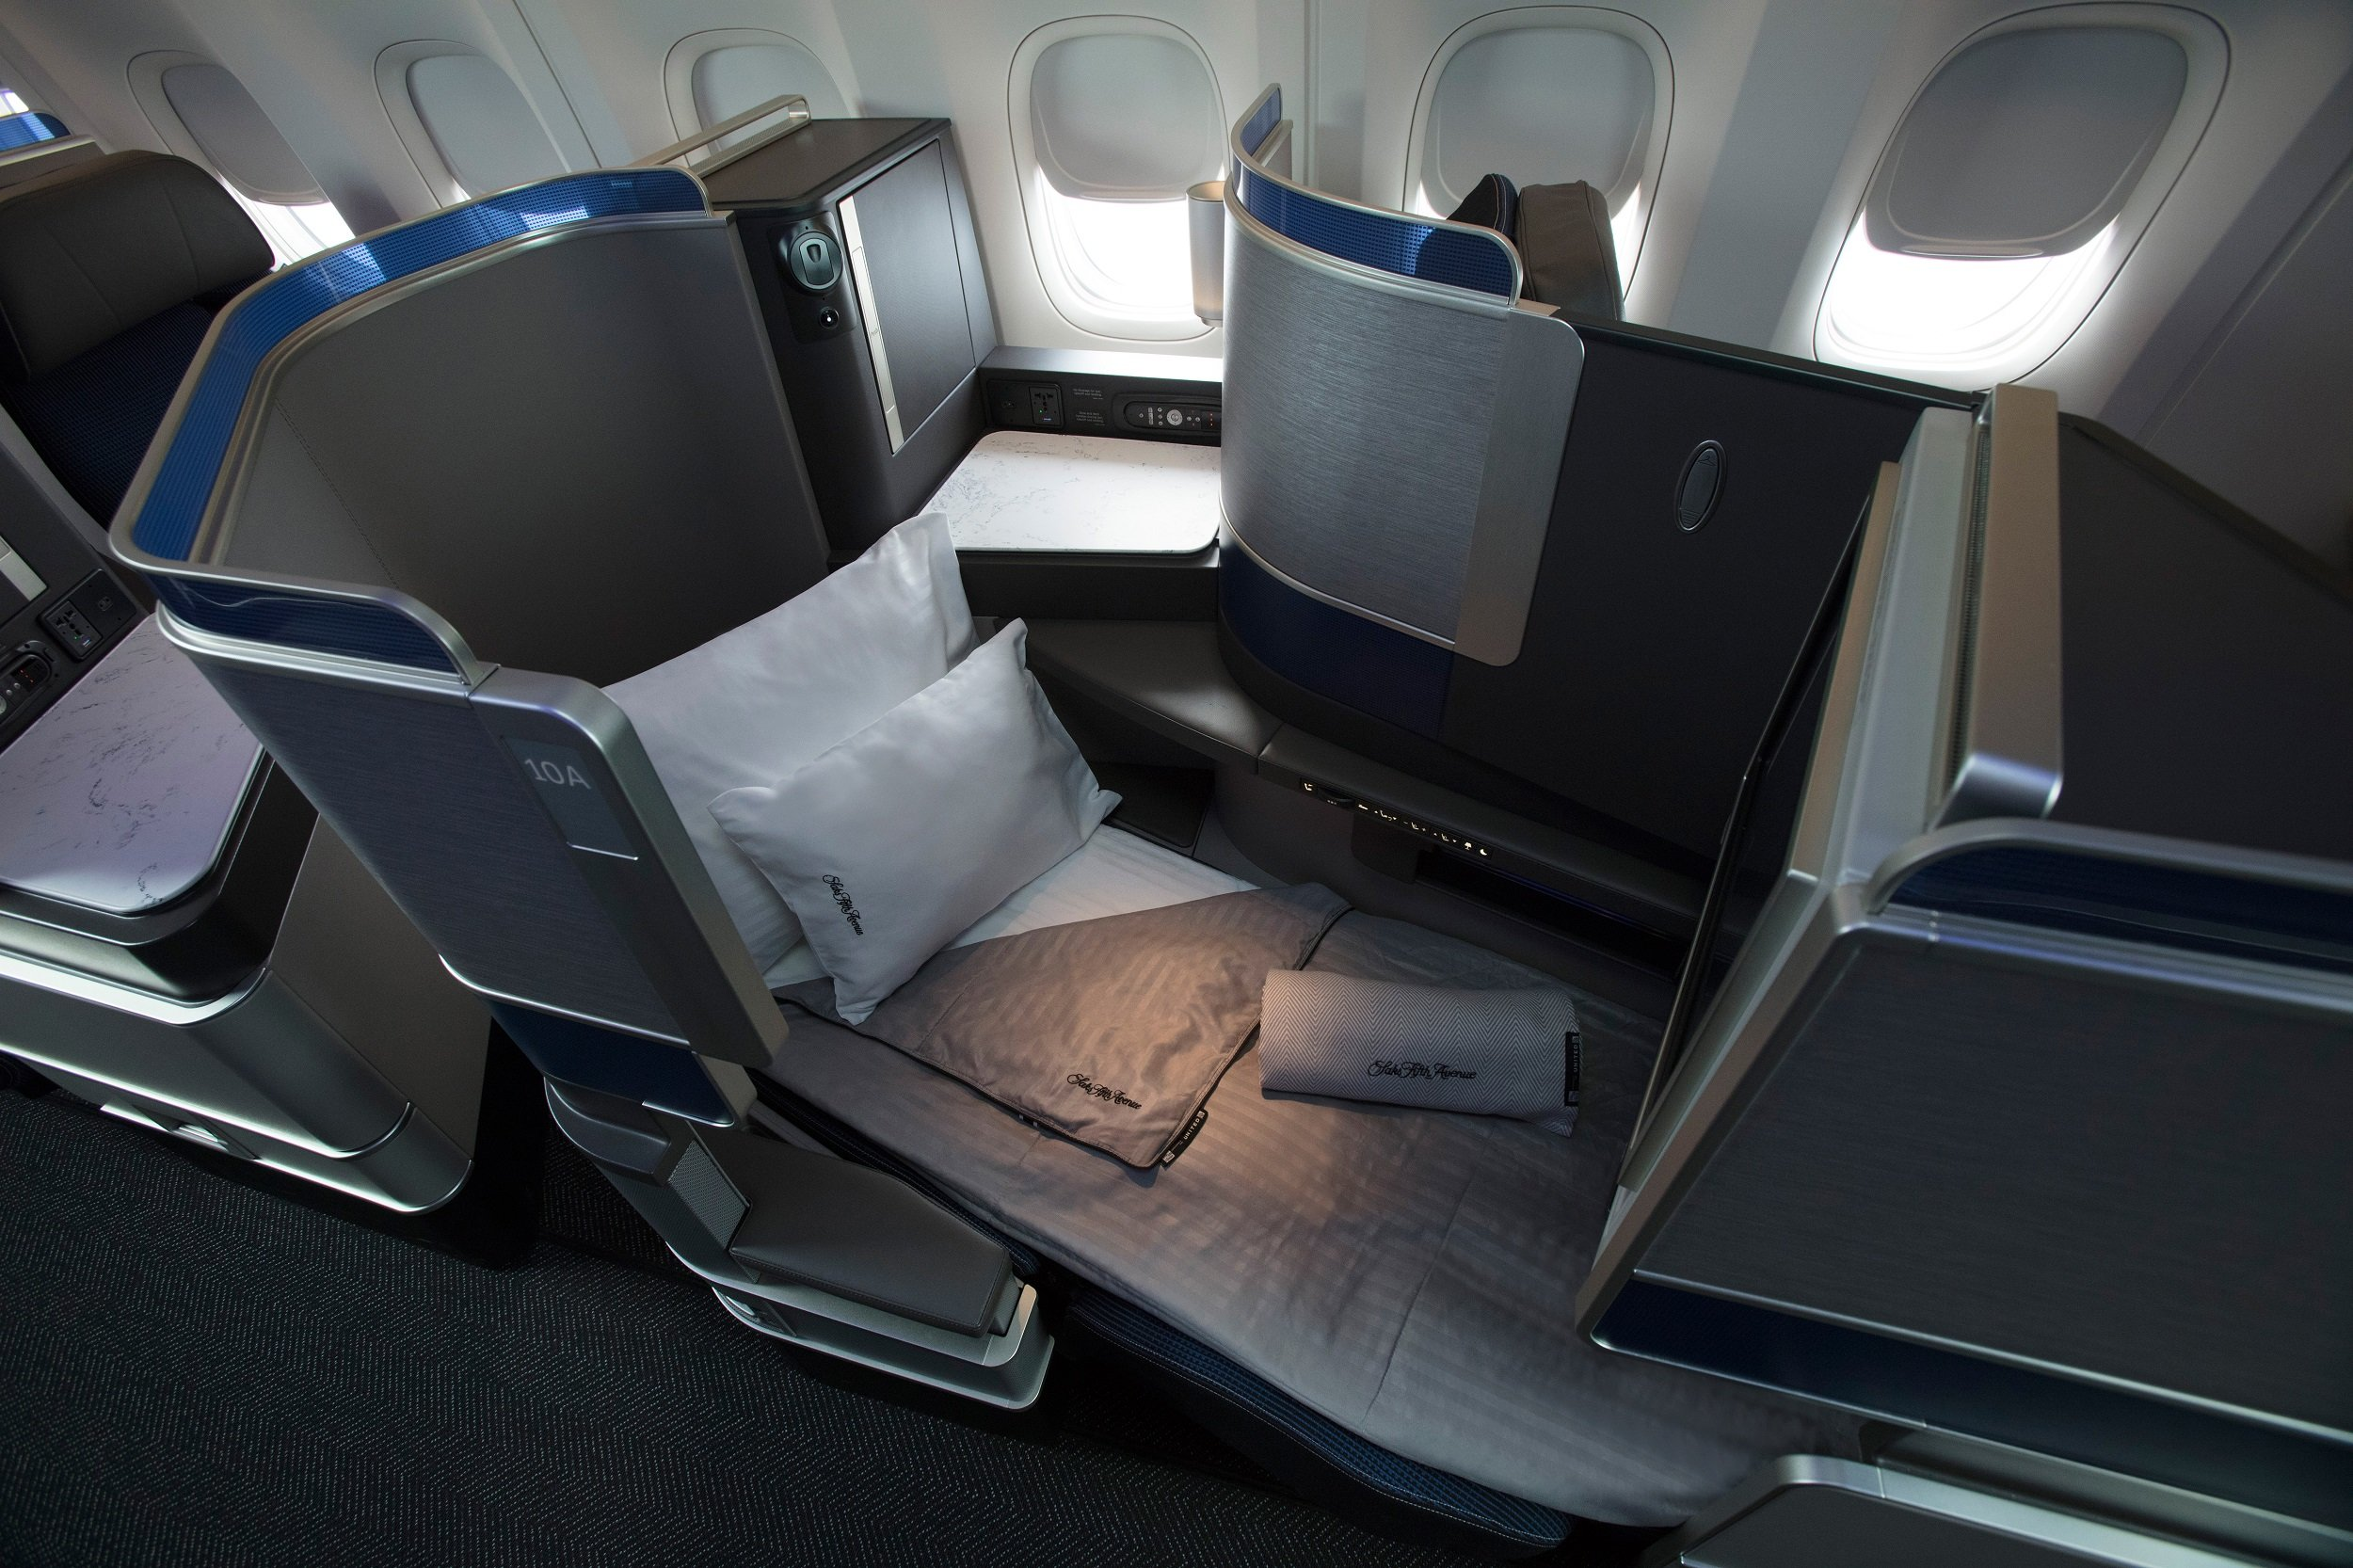 United Polaris business class seat